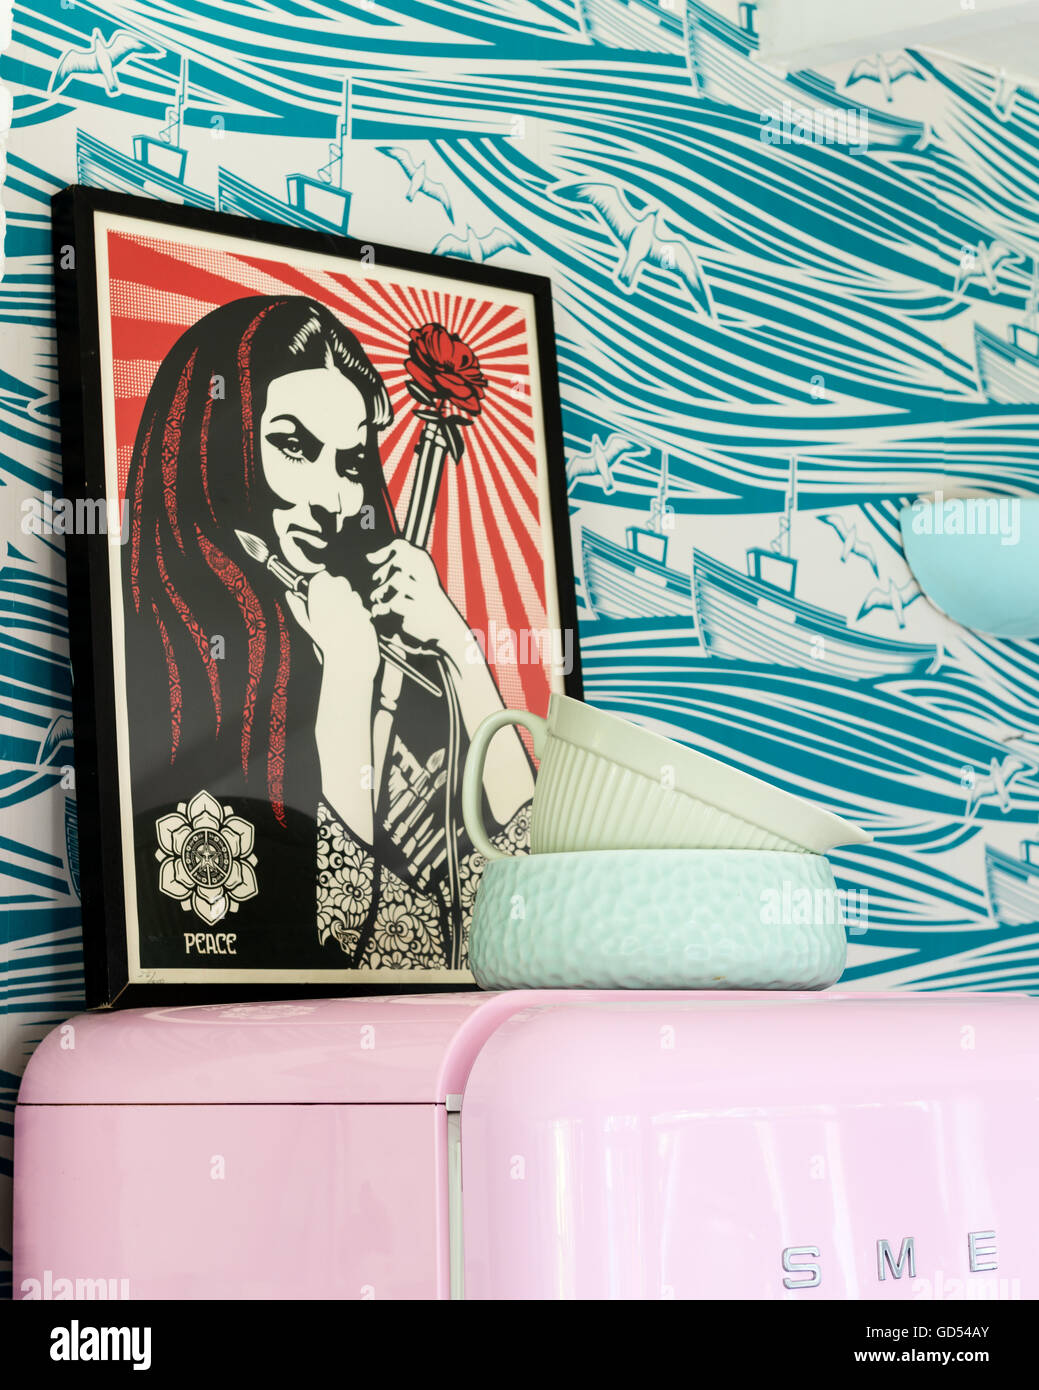 Shepard Fairey art on pink retro Smeg fridge. The wallpaper is Whitby by Mini Moderns - Stock Image